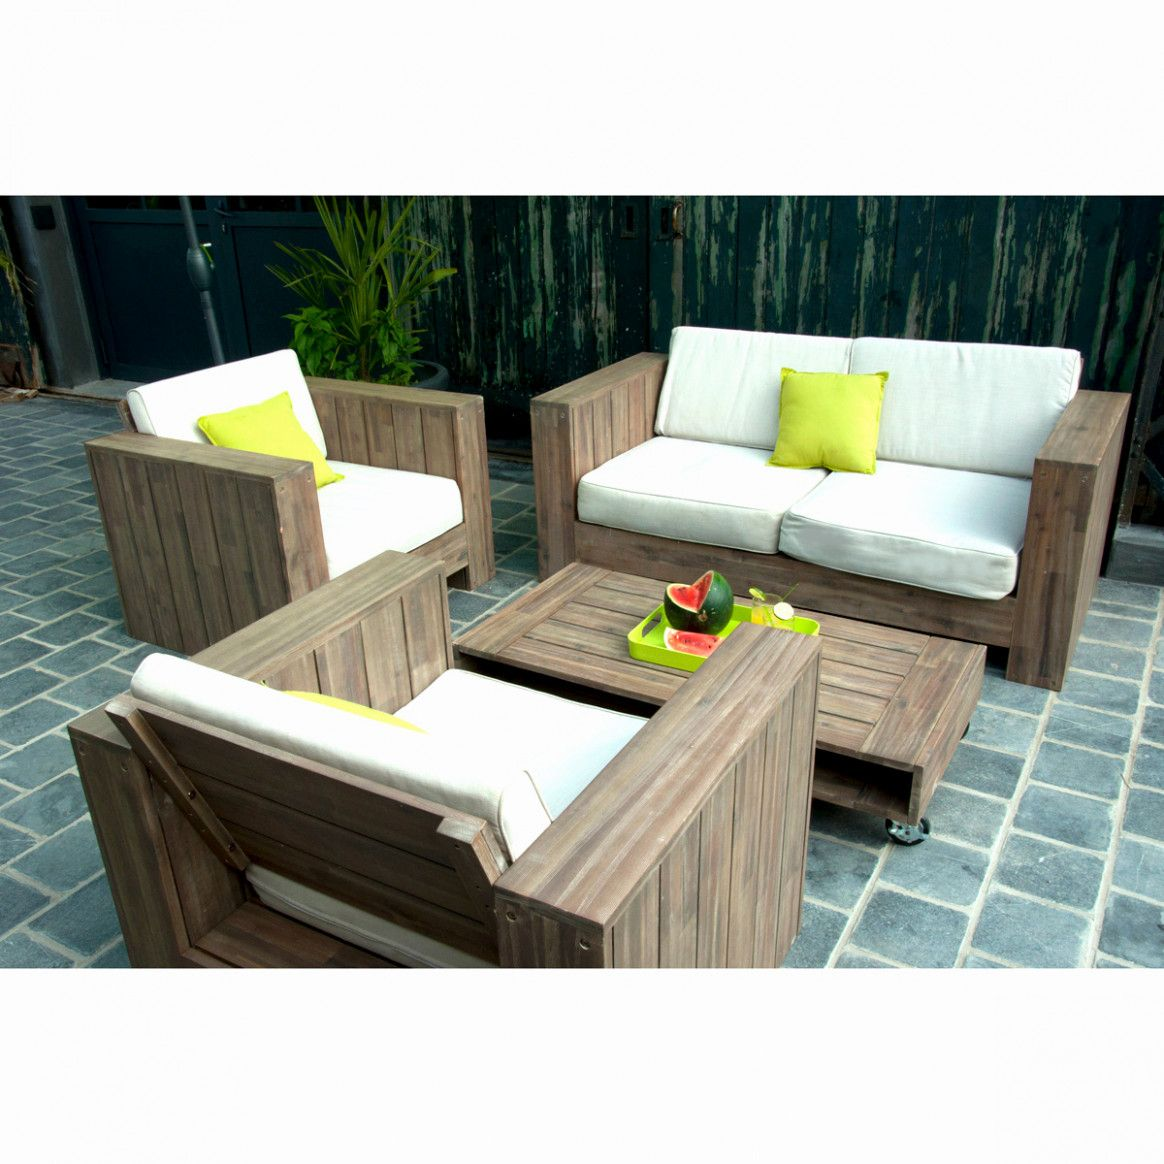 Table De Jardin Foire Fouille 12 Meubles Et Accessoires Pour Cocooner Dans Le Jardinmobilier De Jardi Outdoor Furniture Sets Outdoor Furniture Garden Furniture